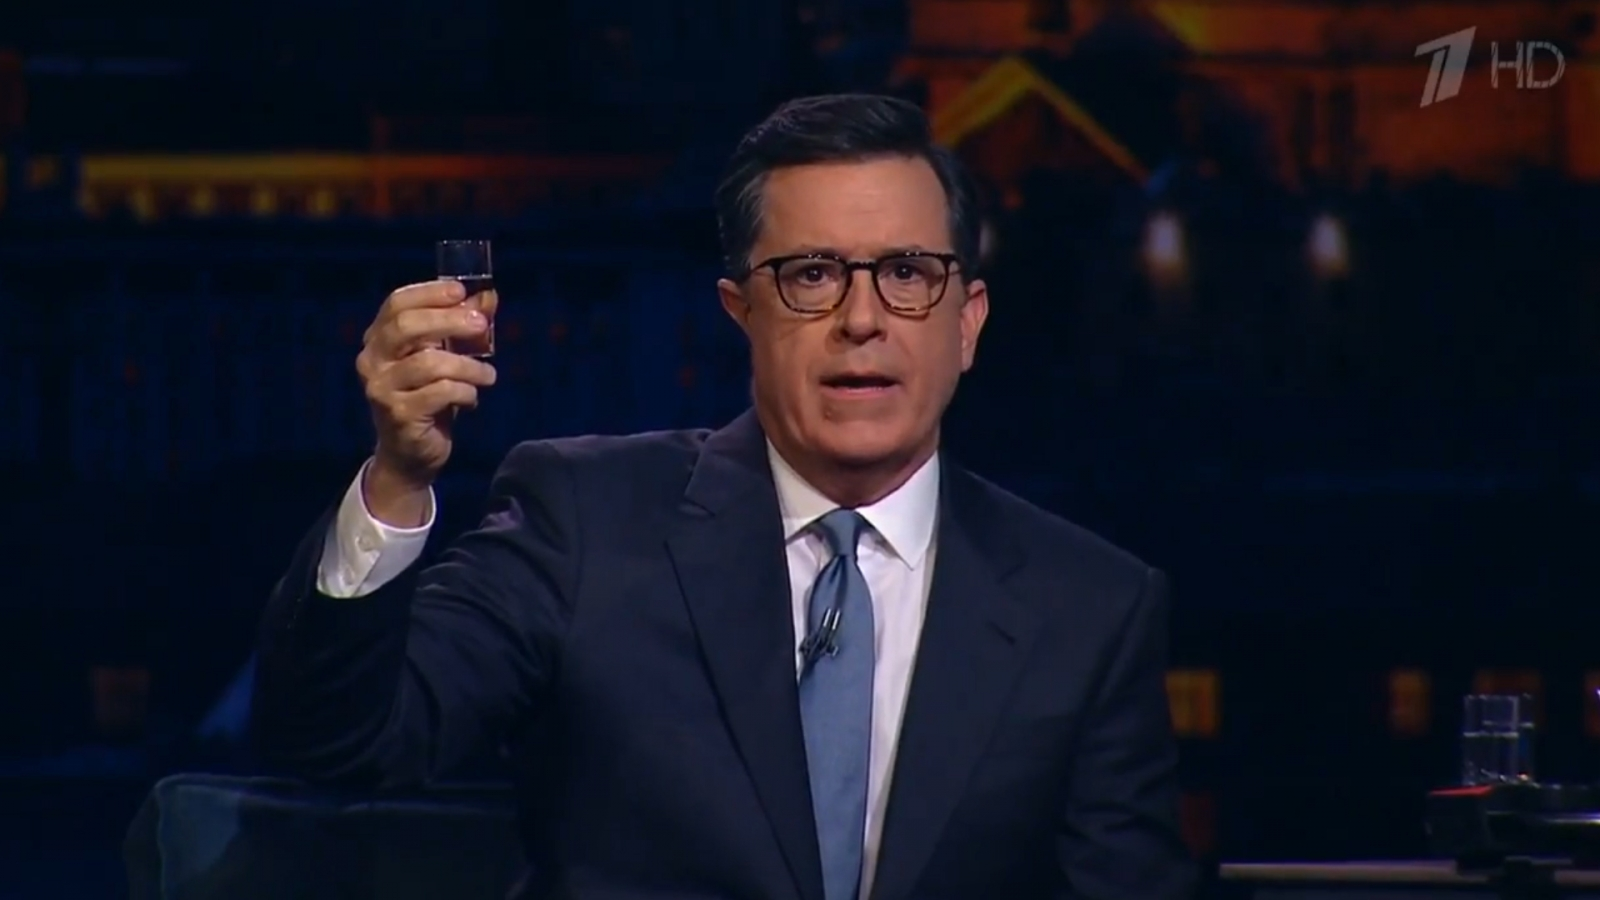 Stephen Colbert announces possible bid for presidency after shots on Russian TV